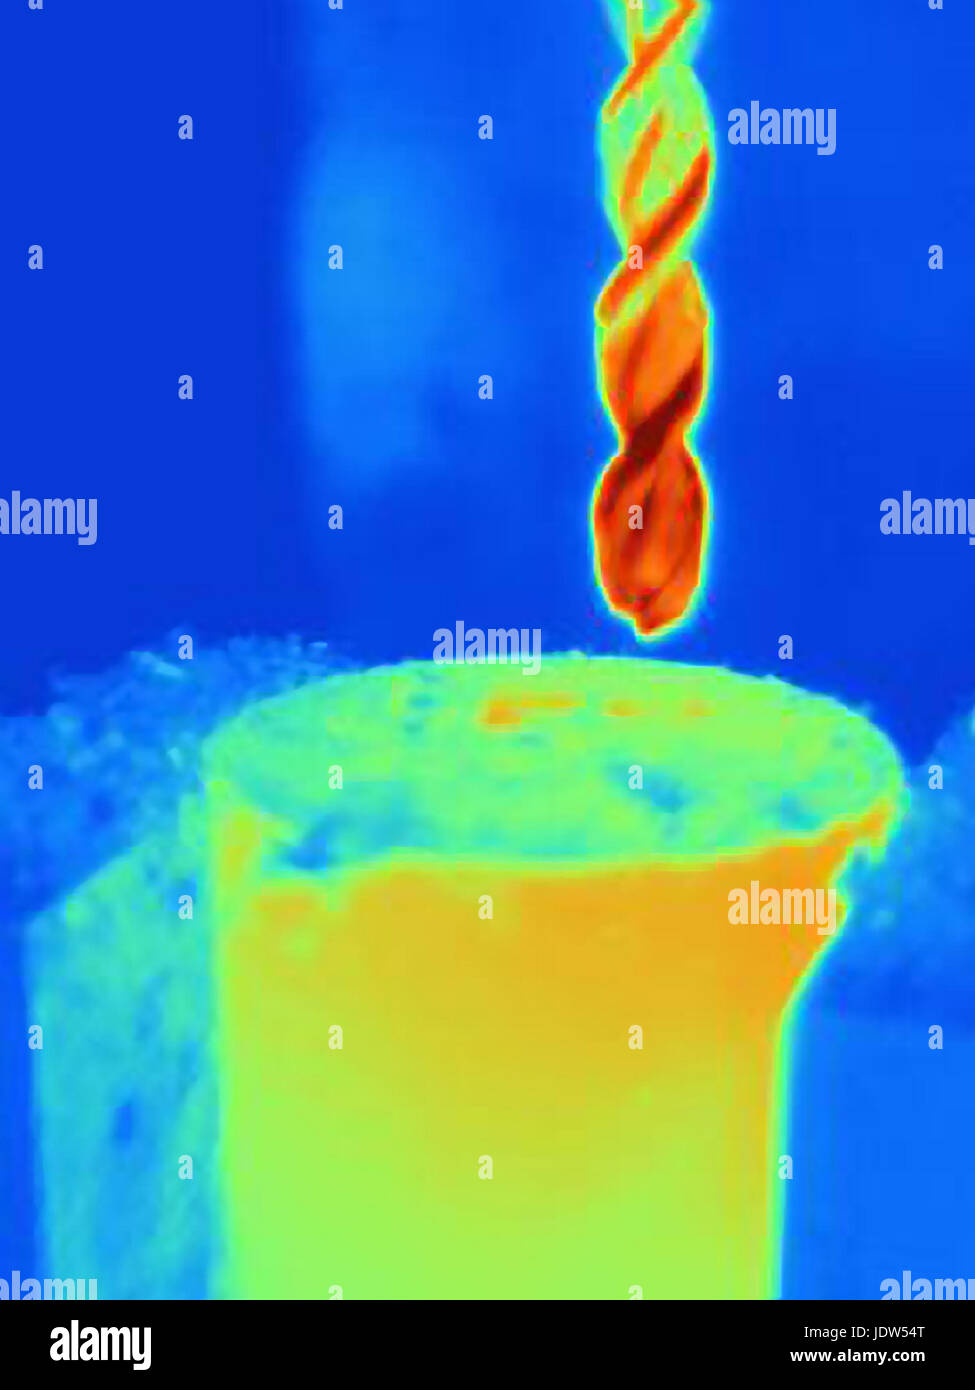 Thermal image of drilling into a component, showing the heat buildup on the drill bit and the part - Stock Image